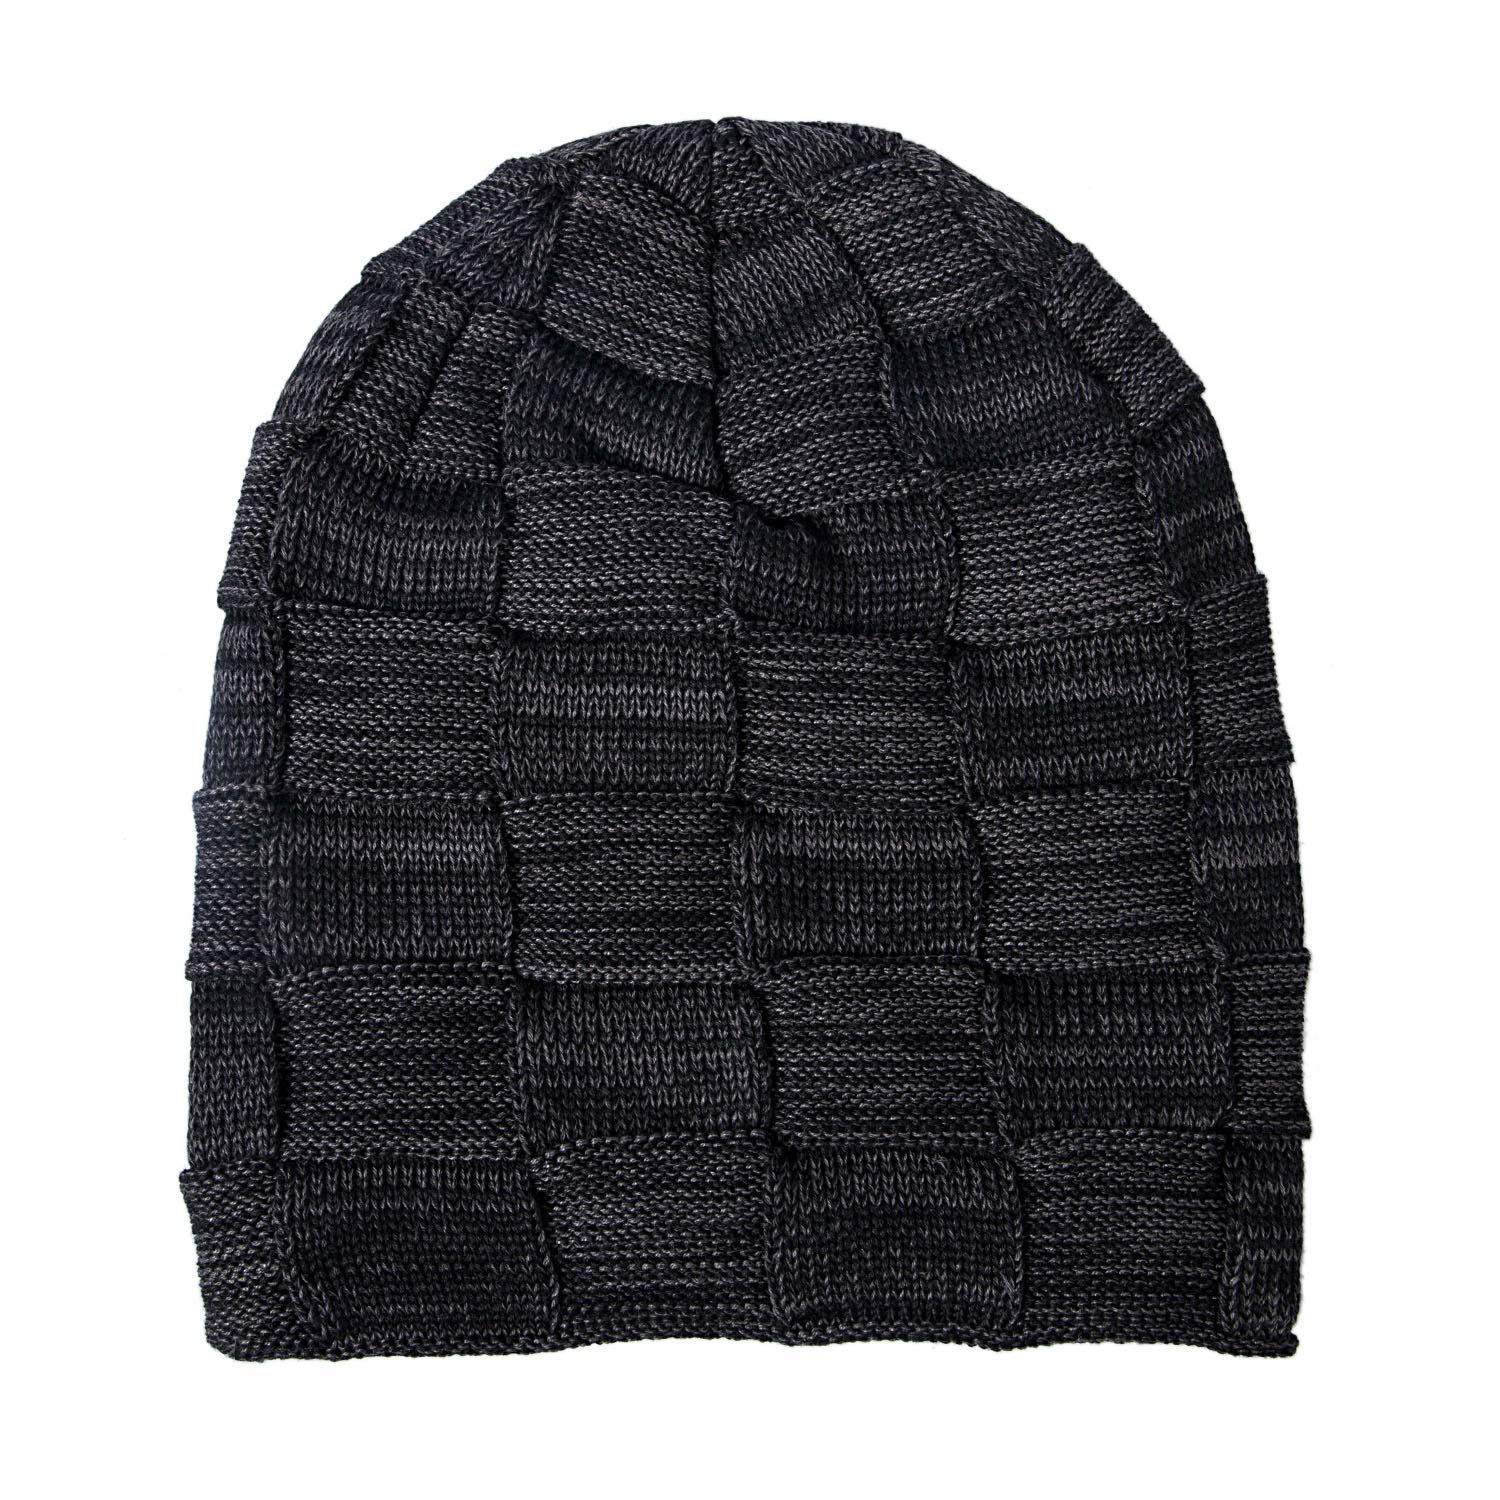 bb70bd94c14 Senker Slouchy Beanie Knit Cap Winter Soft Thick Warm Hats for Men and  Women